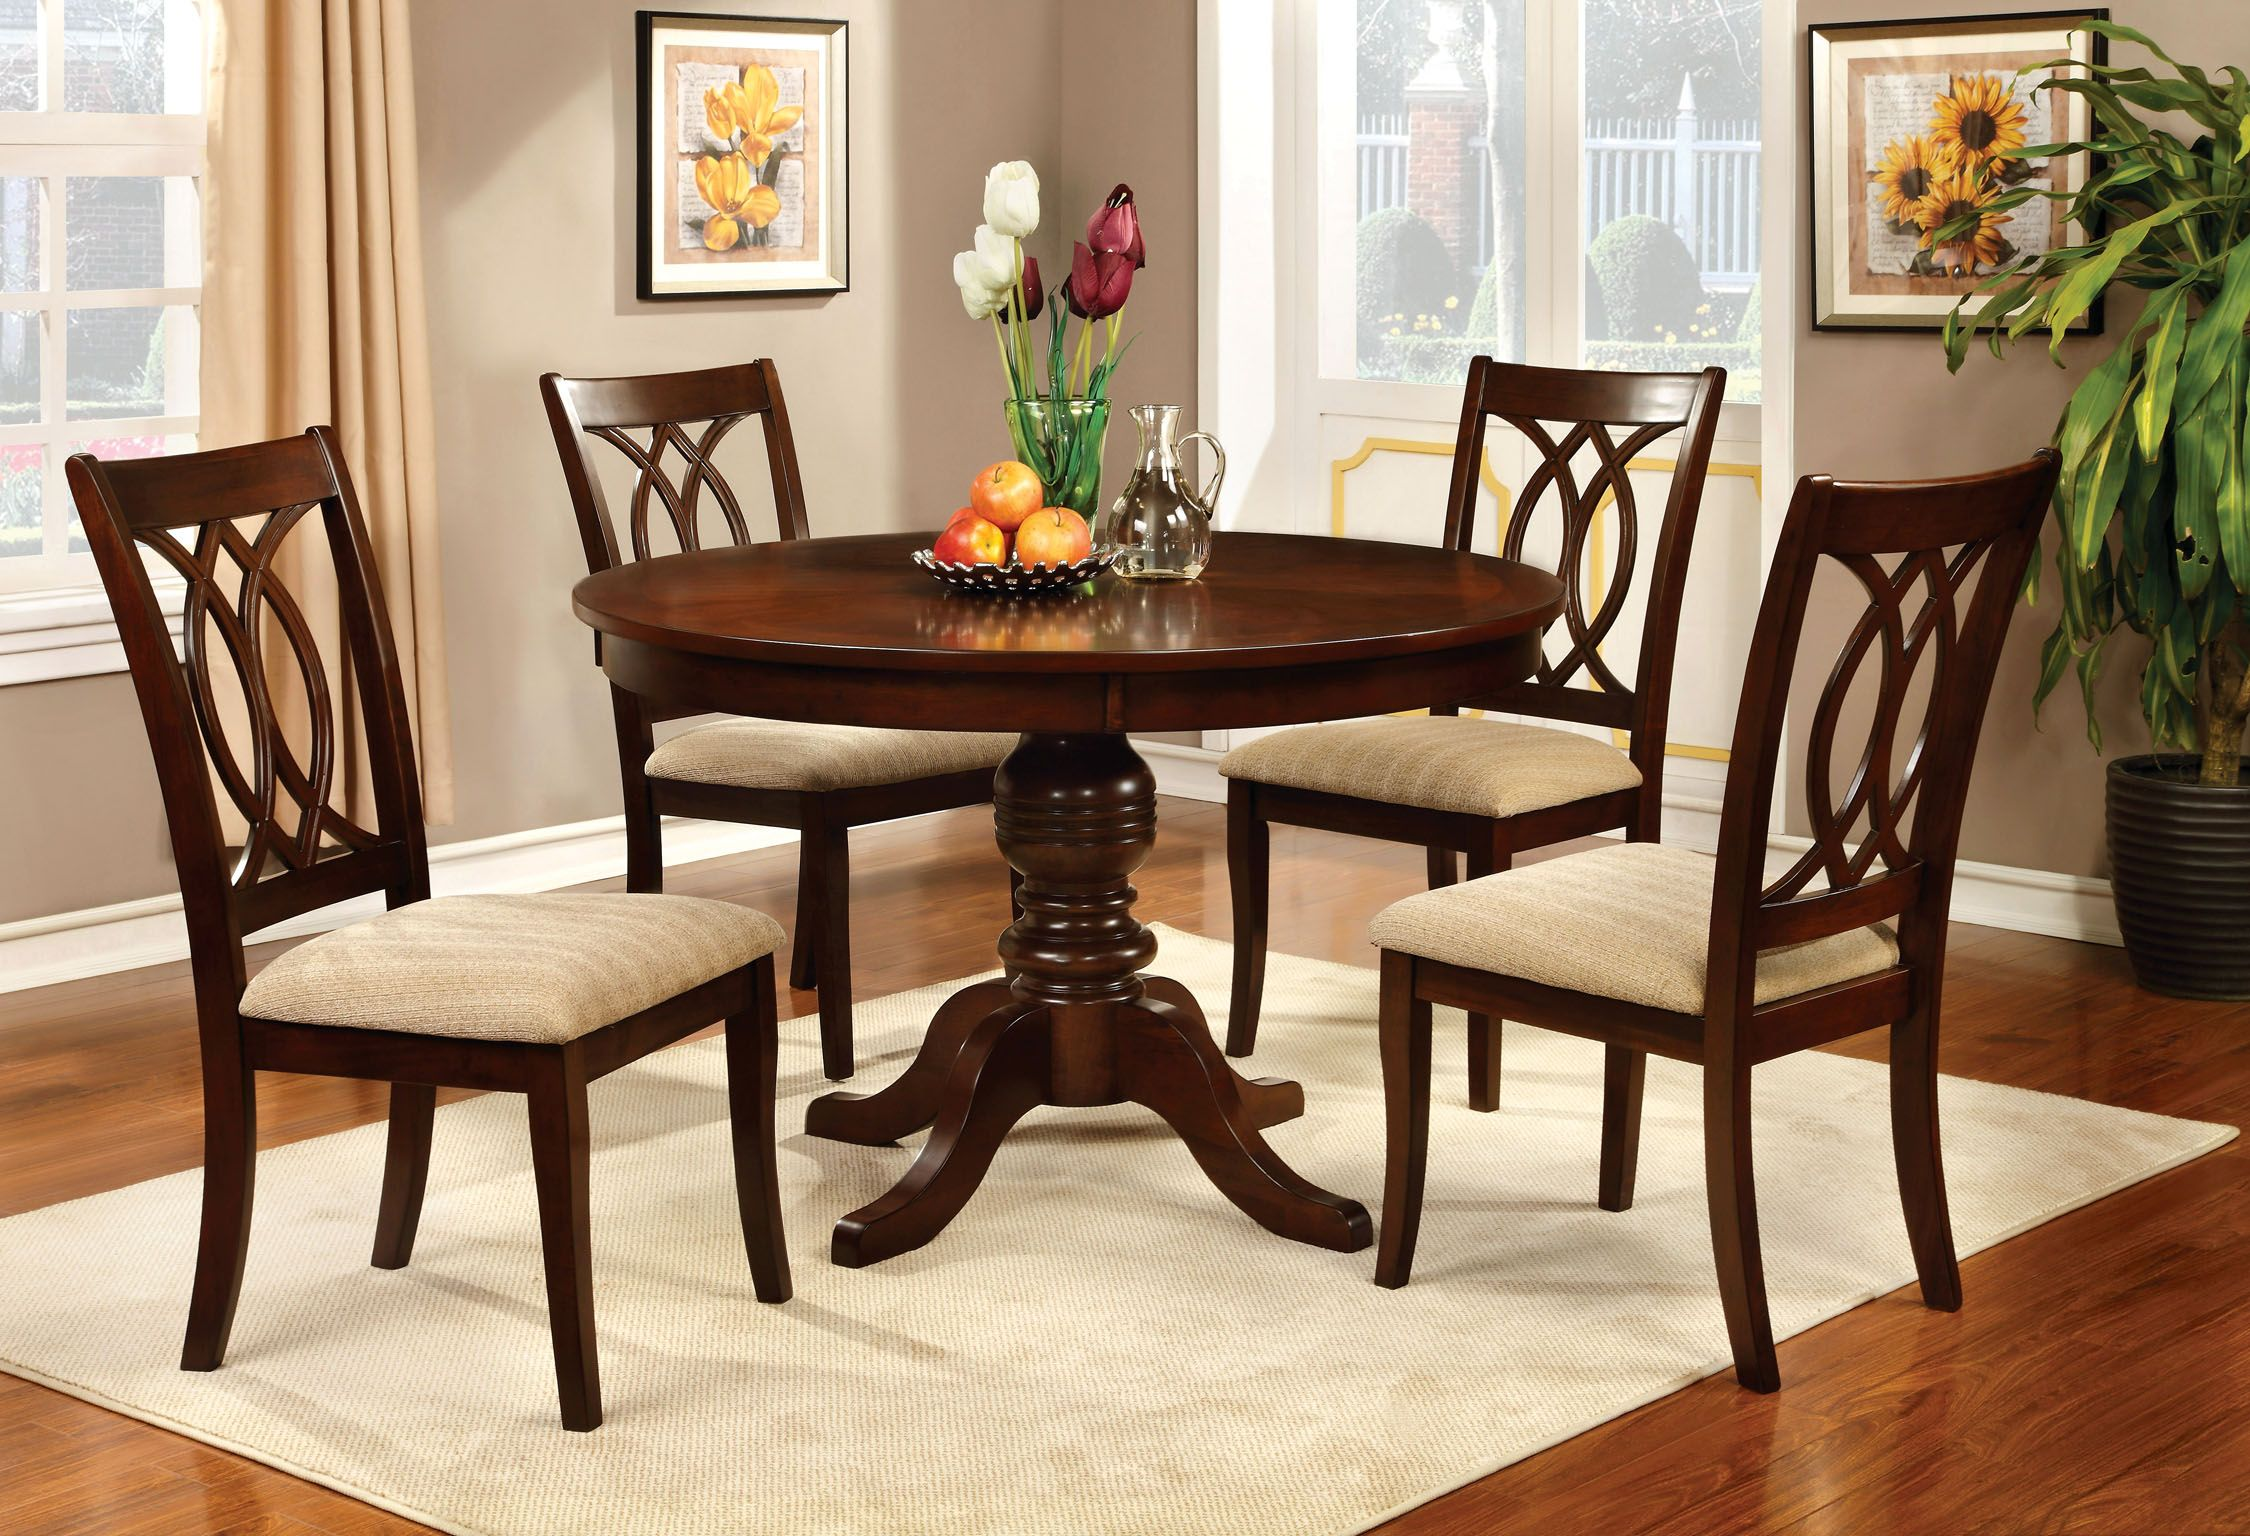 Furniture Of America Brennan 5Piece Round Brown Cherry Dining Set Glamorous 2 Piece Dining Room Set Decorating Inspiration